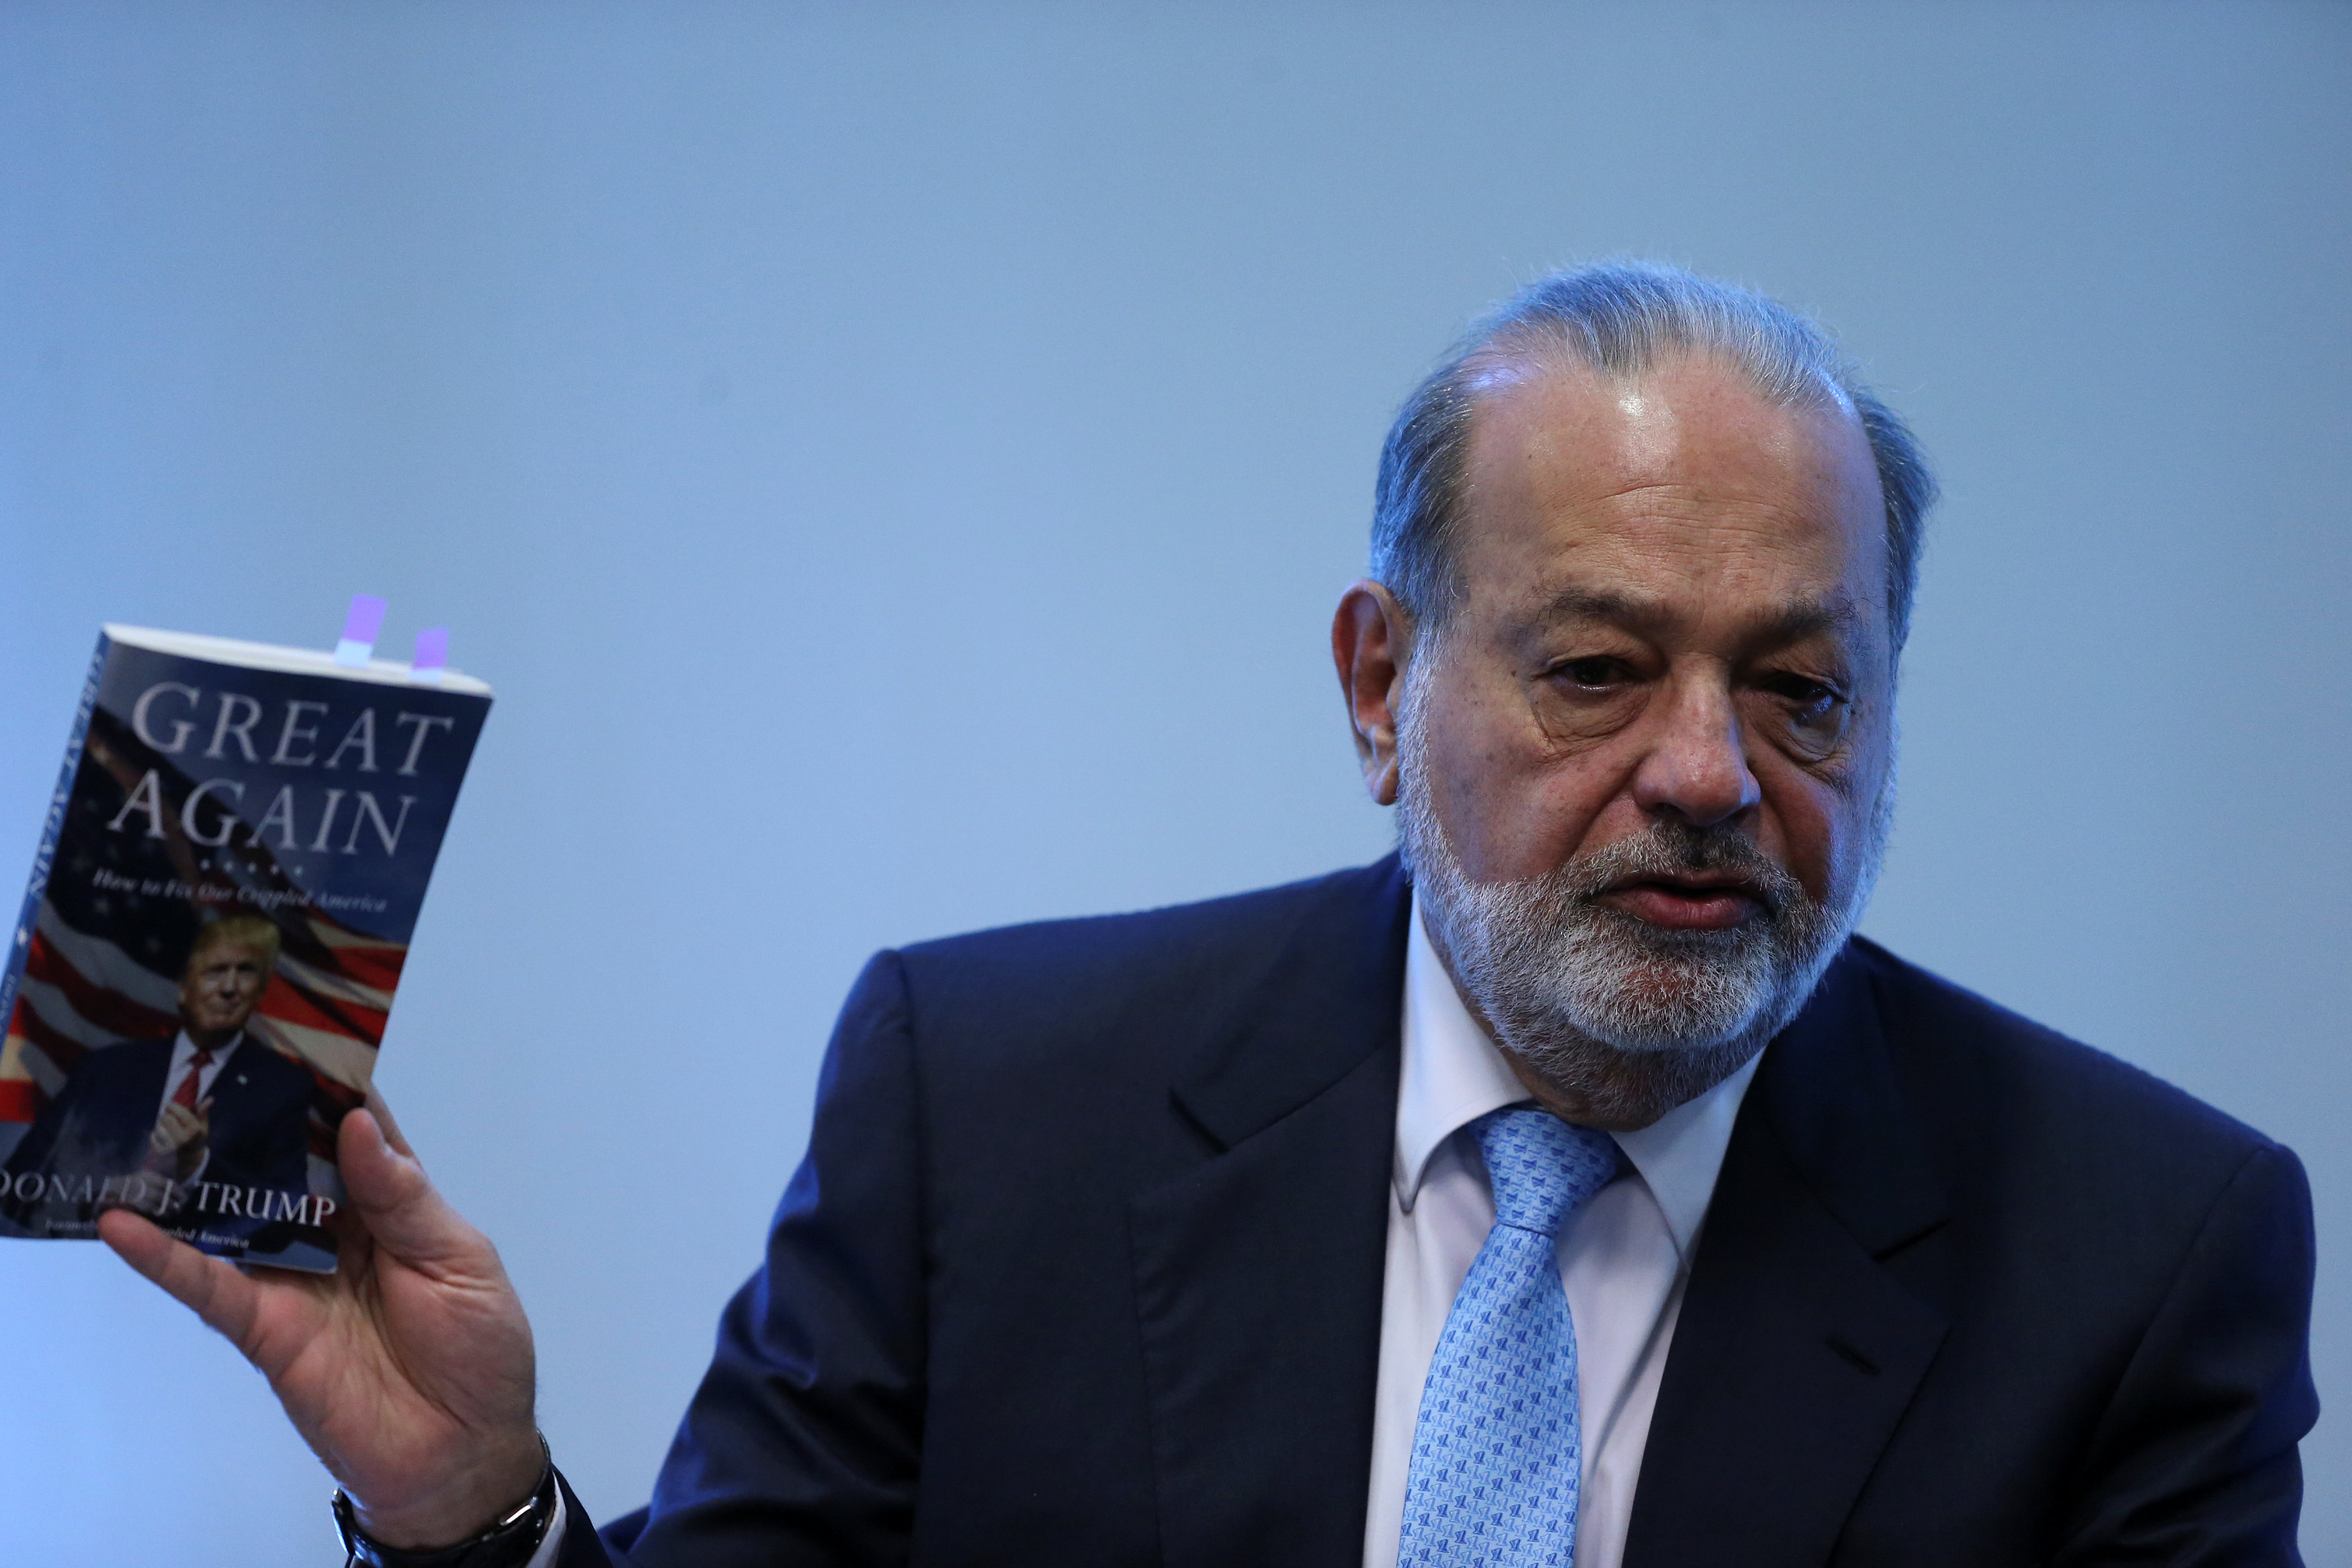 """Mexican billionaire Carlos Slim shows the book """"Crippled America: How to make America great again"""" by Donald Trump during a news conference in Mexico City, Mexico"""